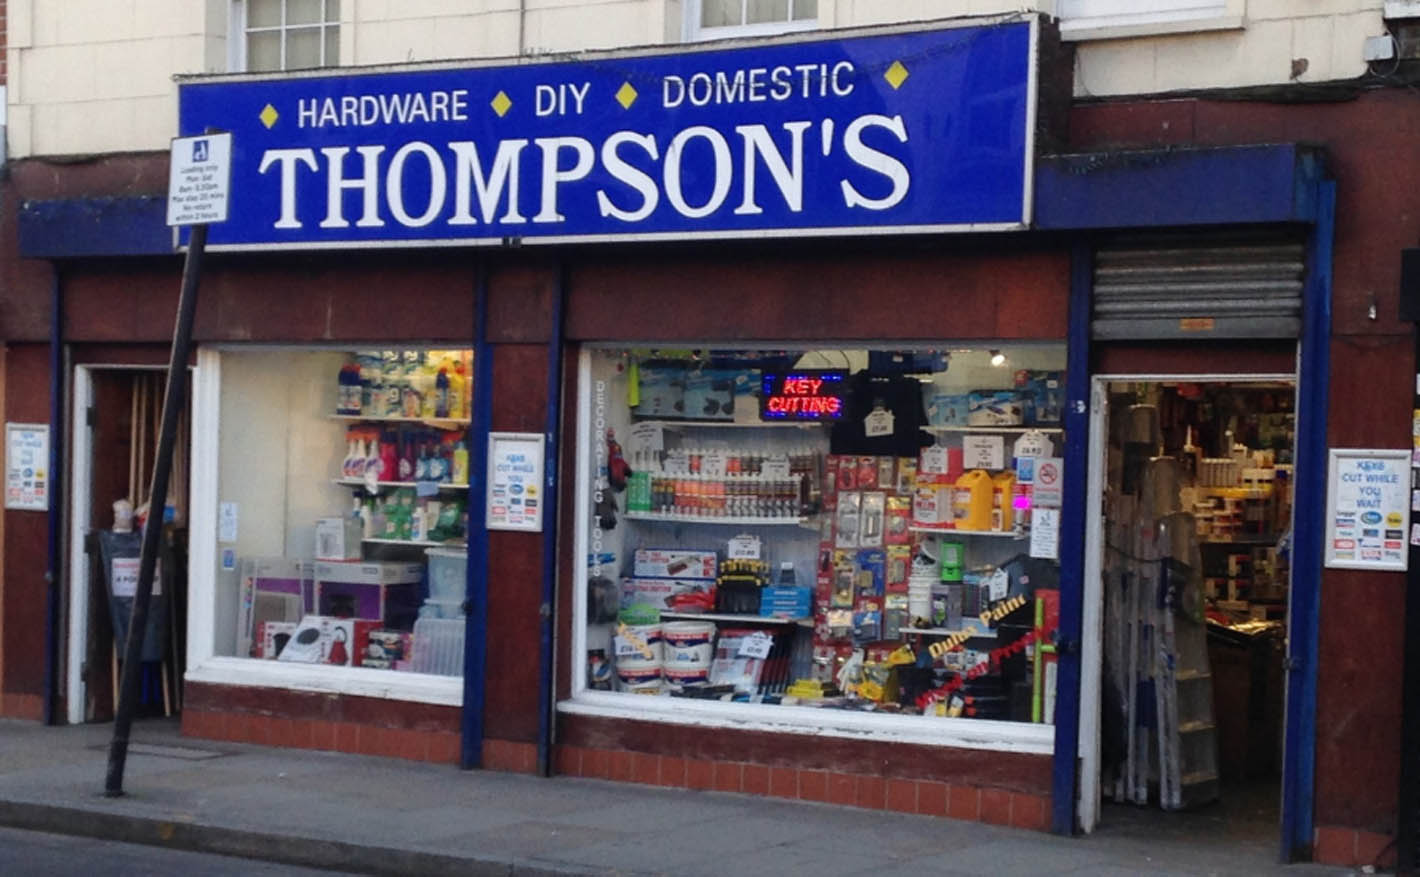 Thompson's DIY